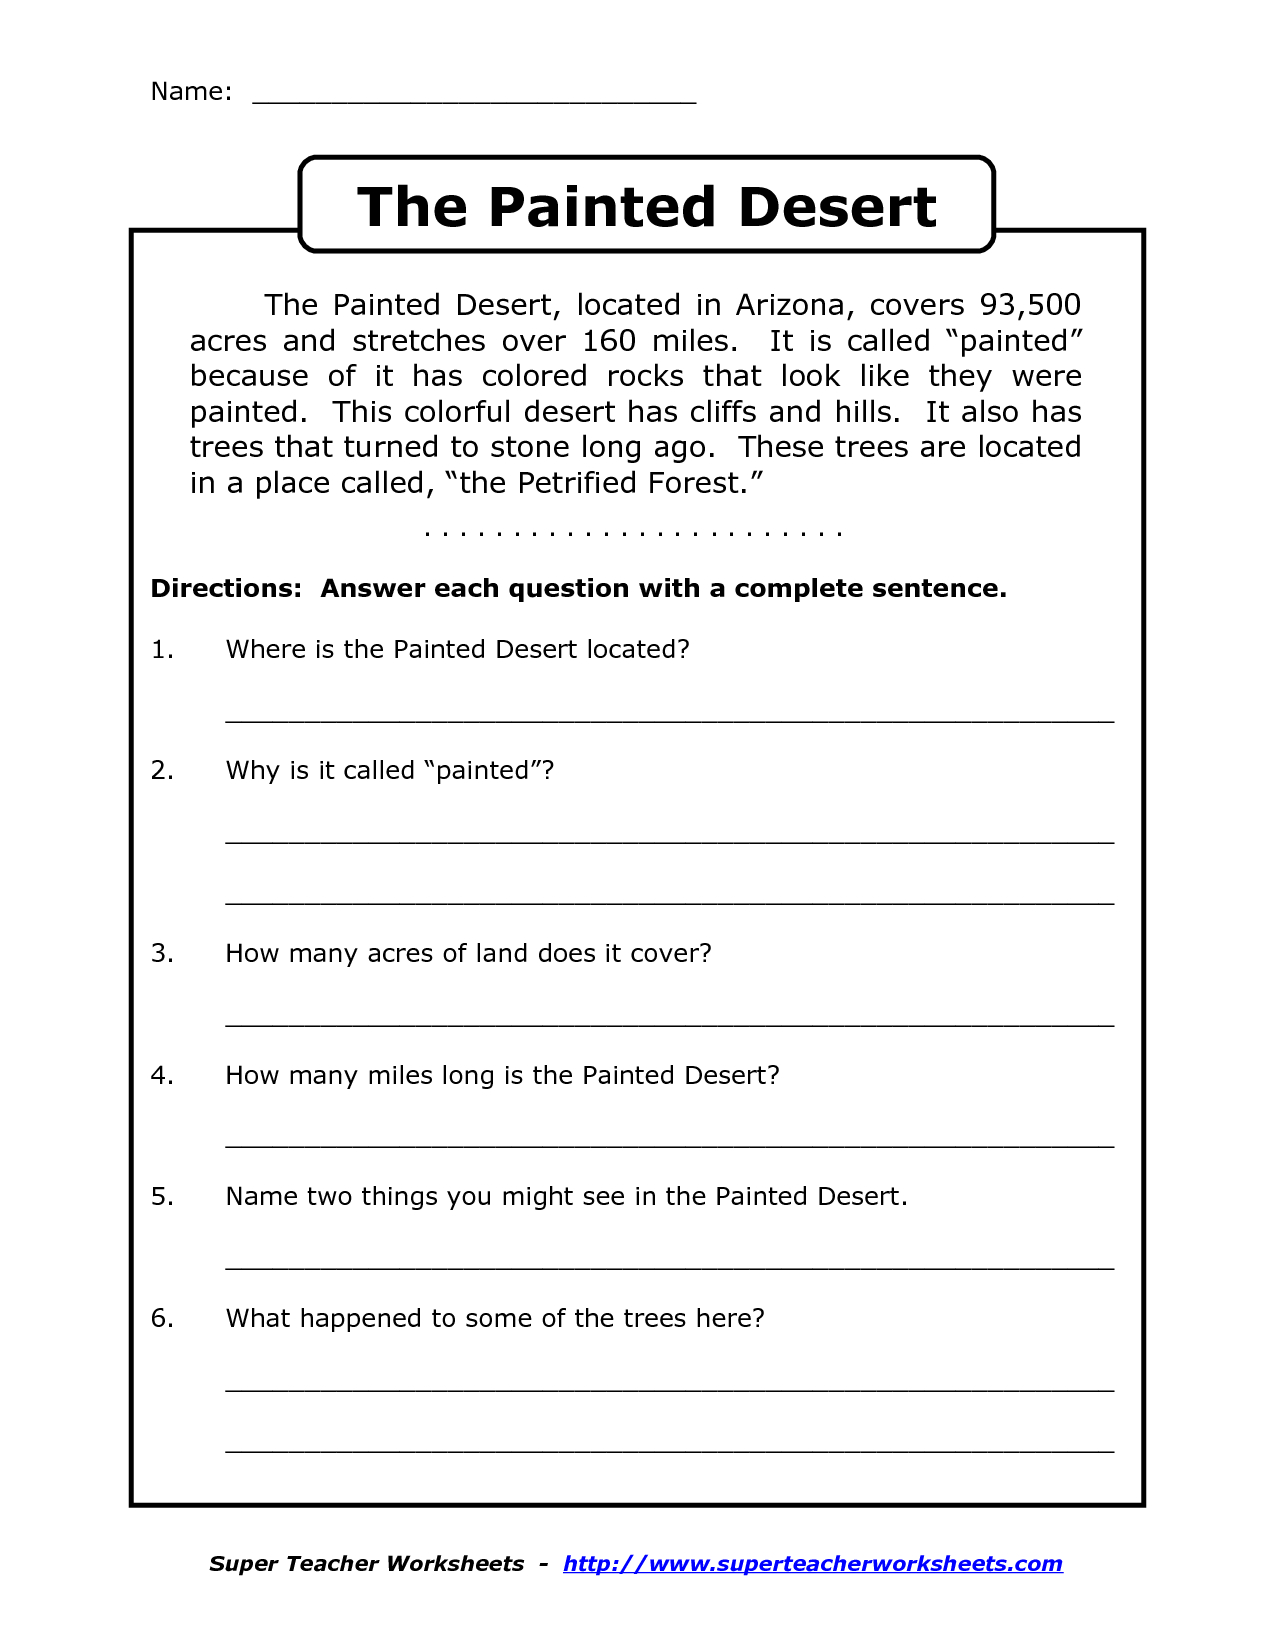 Reading Worksheets For 4Th Grade   Reading Comprehension Worksheets - Free Printable English Comprehension Worksheets For Grade 4